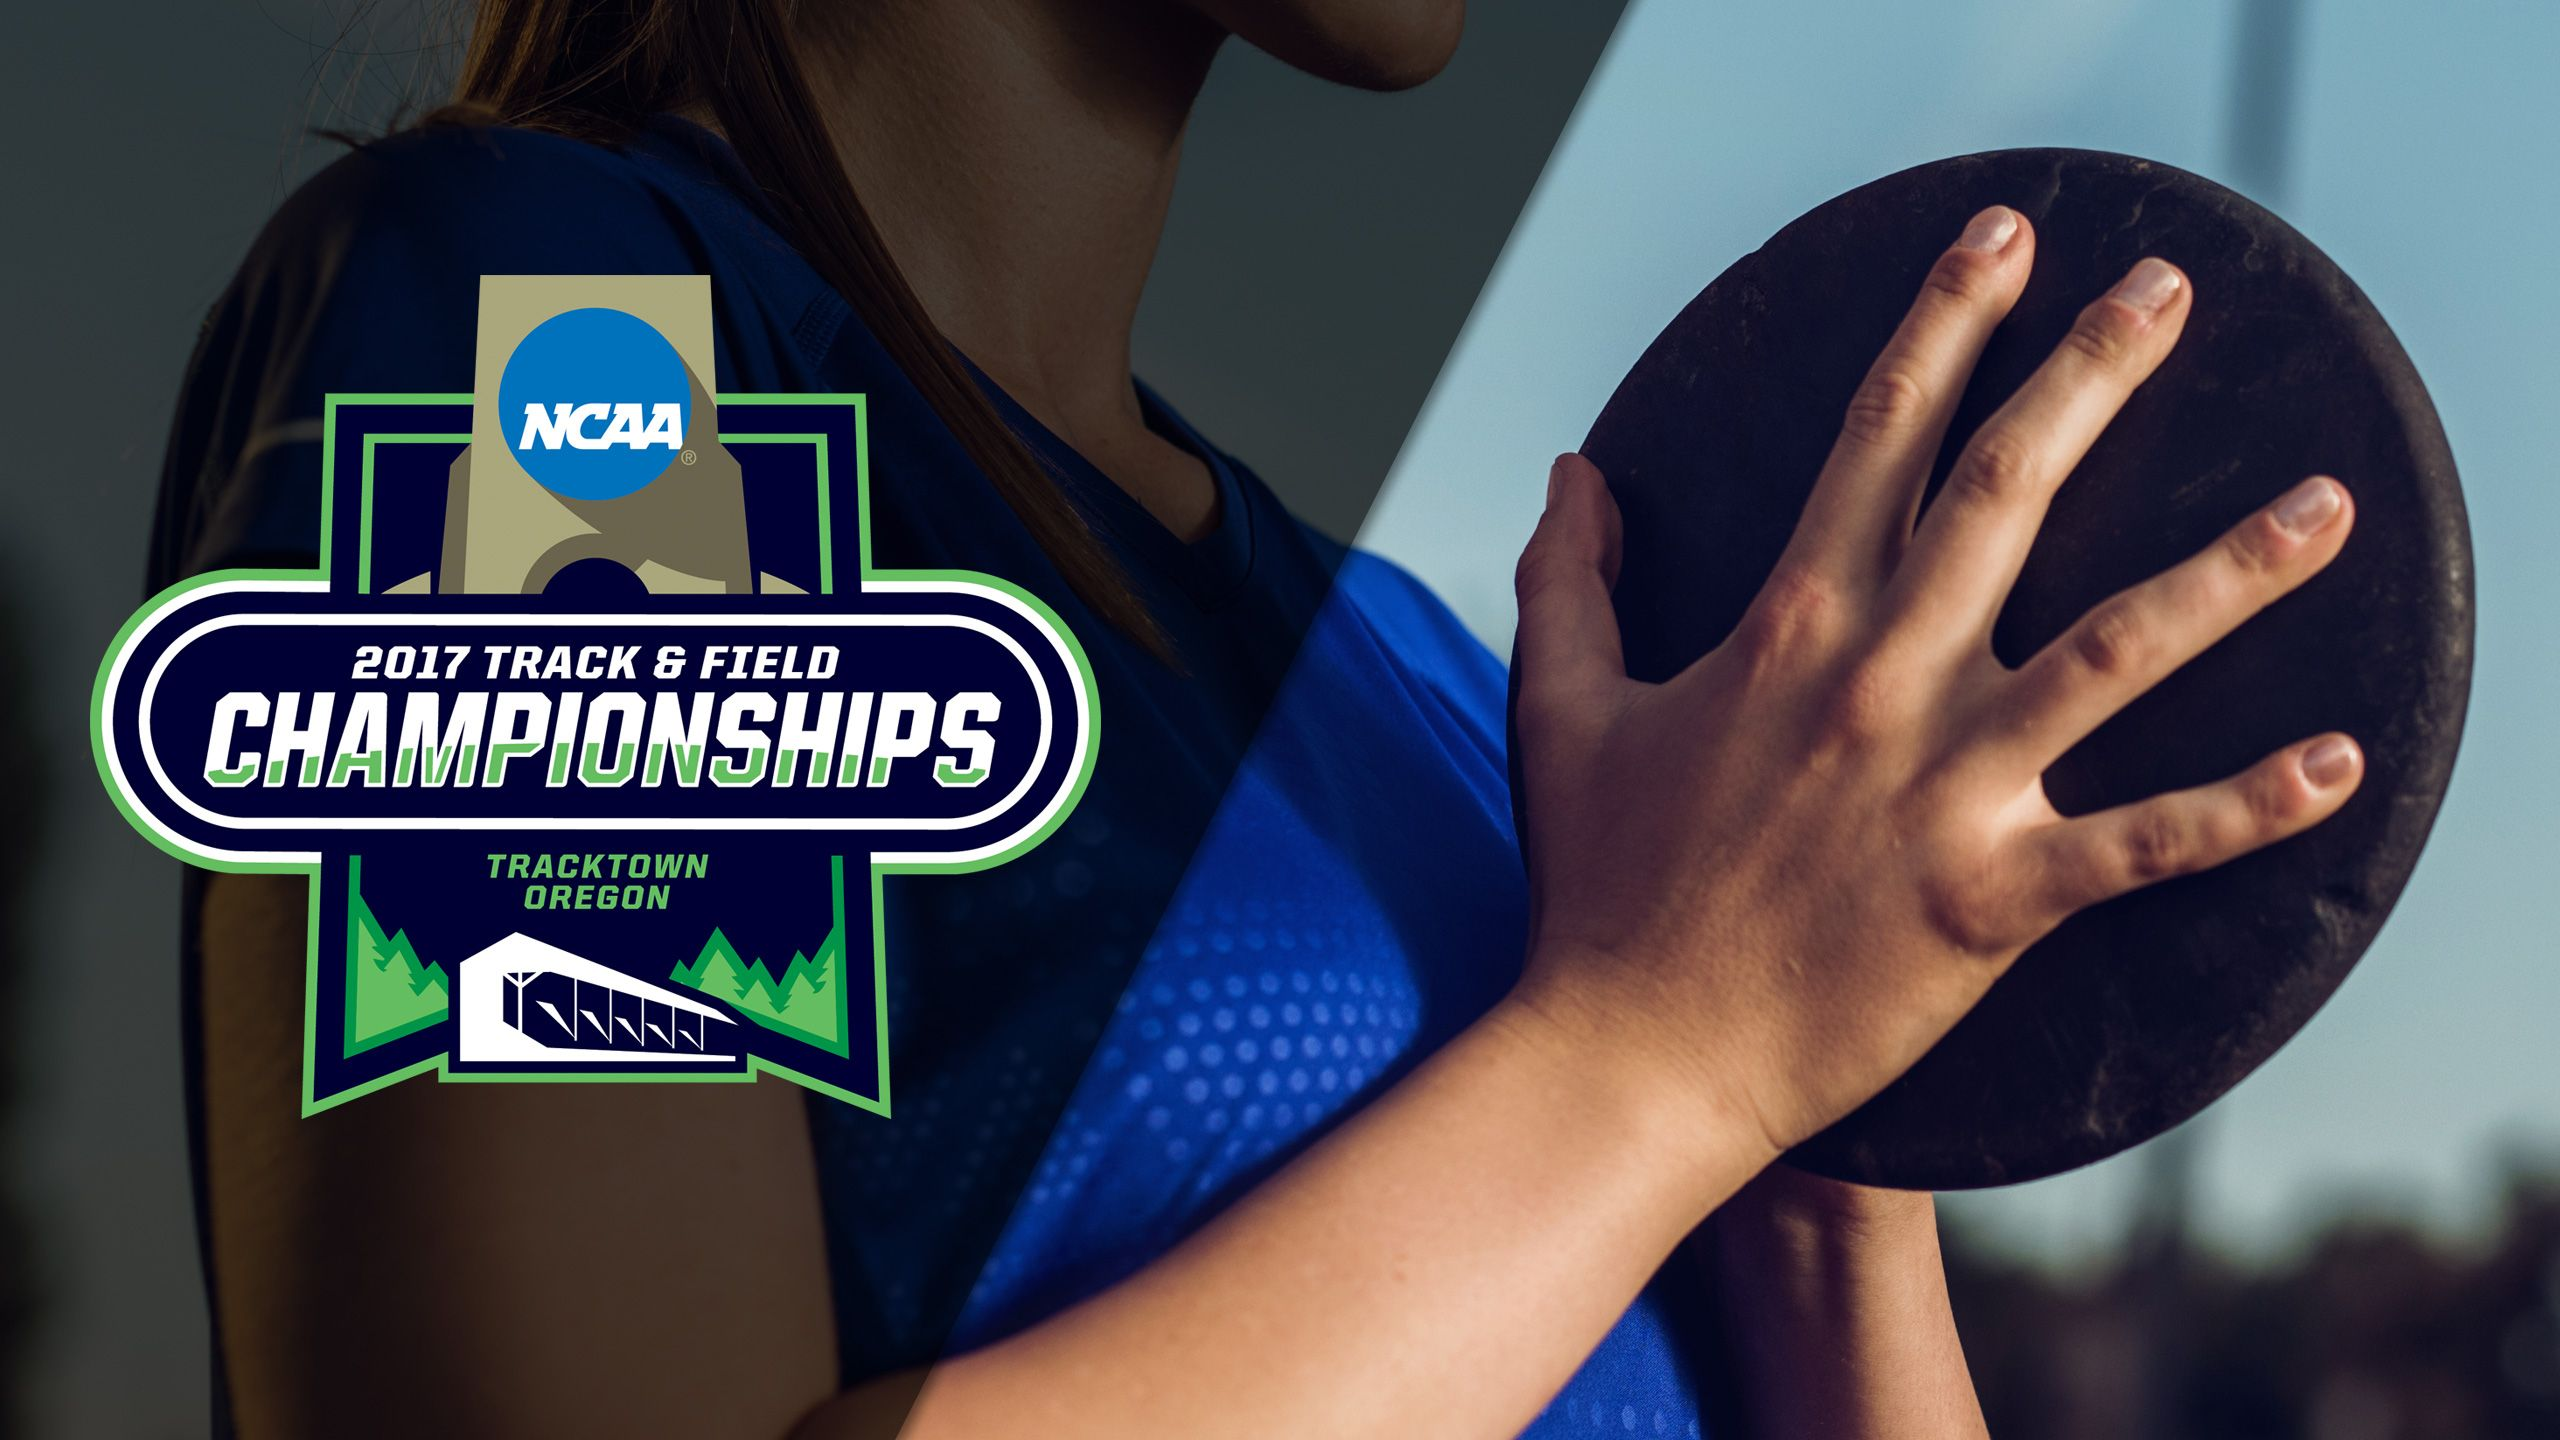 NCAA Track & Field Outdoor Championships - Women's Discus Throw Final